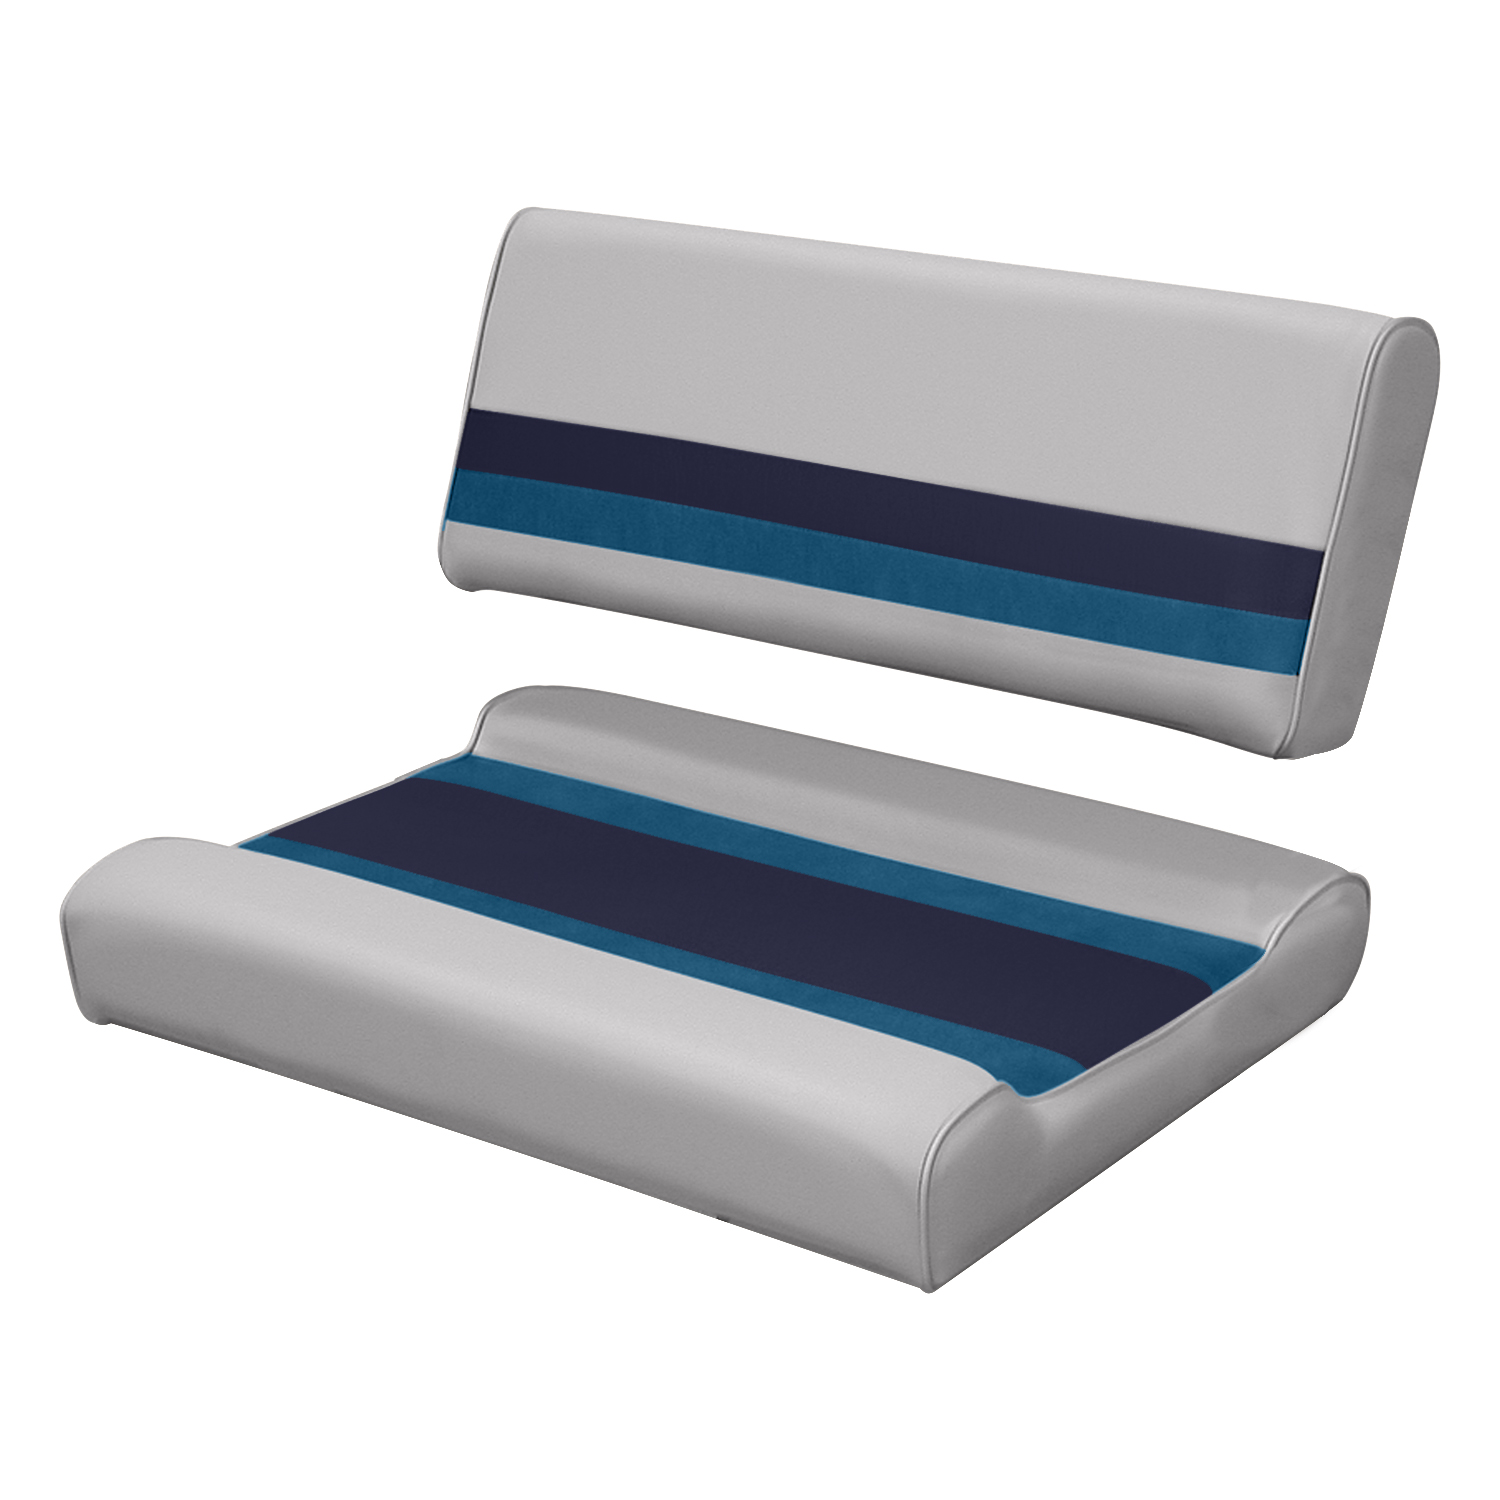 """Wise 8WD125FF-1008 Deluxe Series Pontoon 32"""" Flip Flop Bench Seat and Backrest Cushion Set, White/Navy/Blue"""